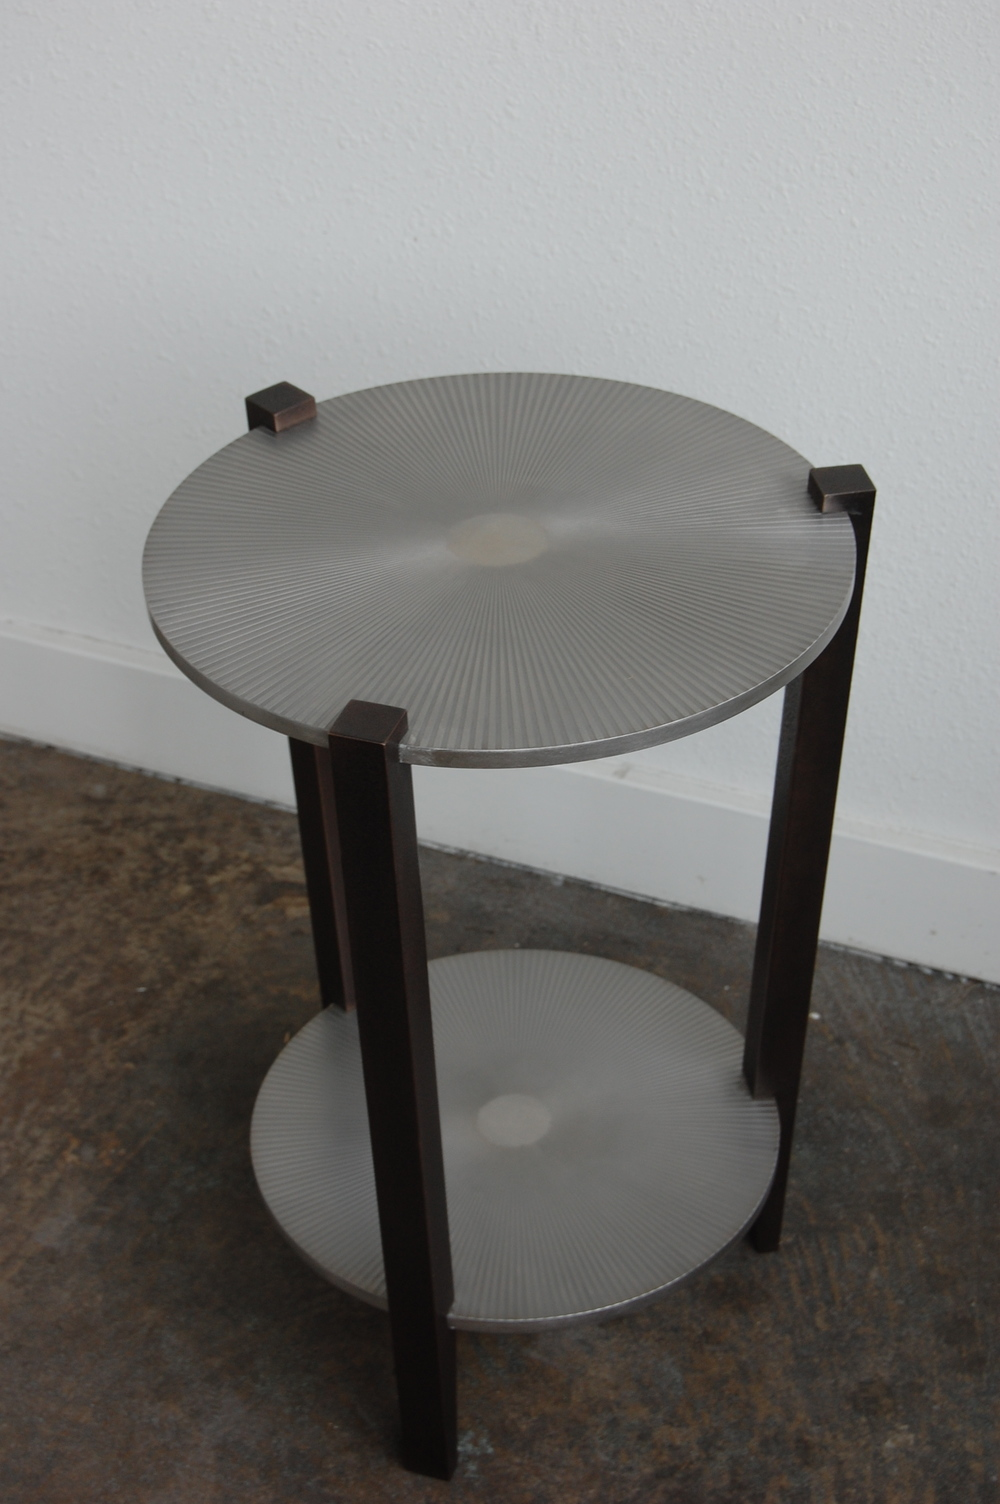 Stainless steel with starburst etched pattern. Legs are textured bronze.  Designed by Formed Objects